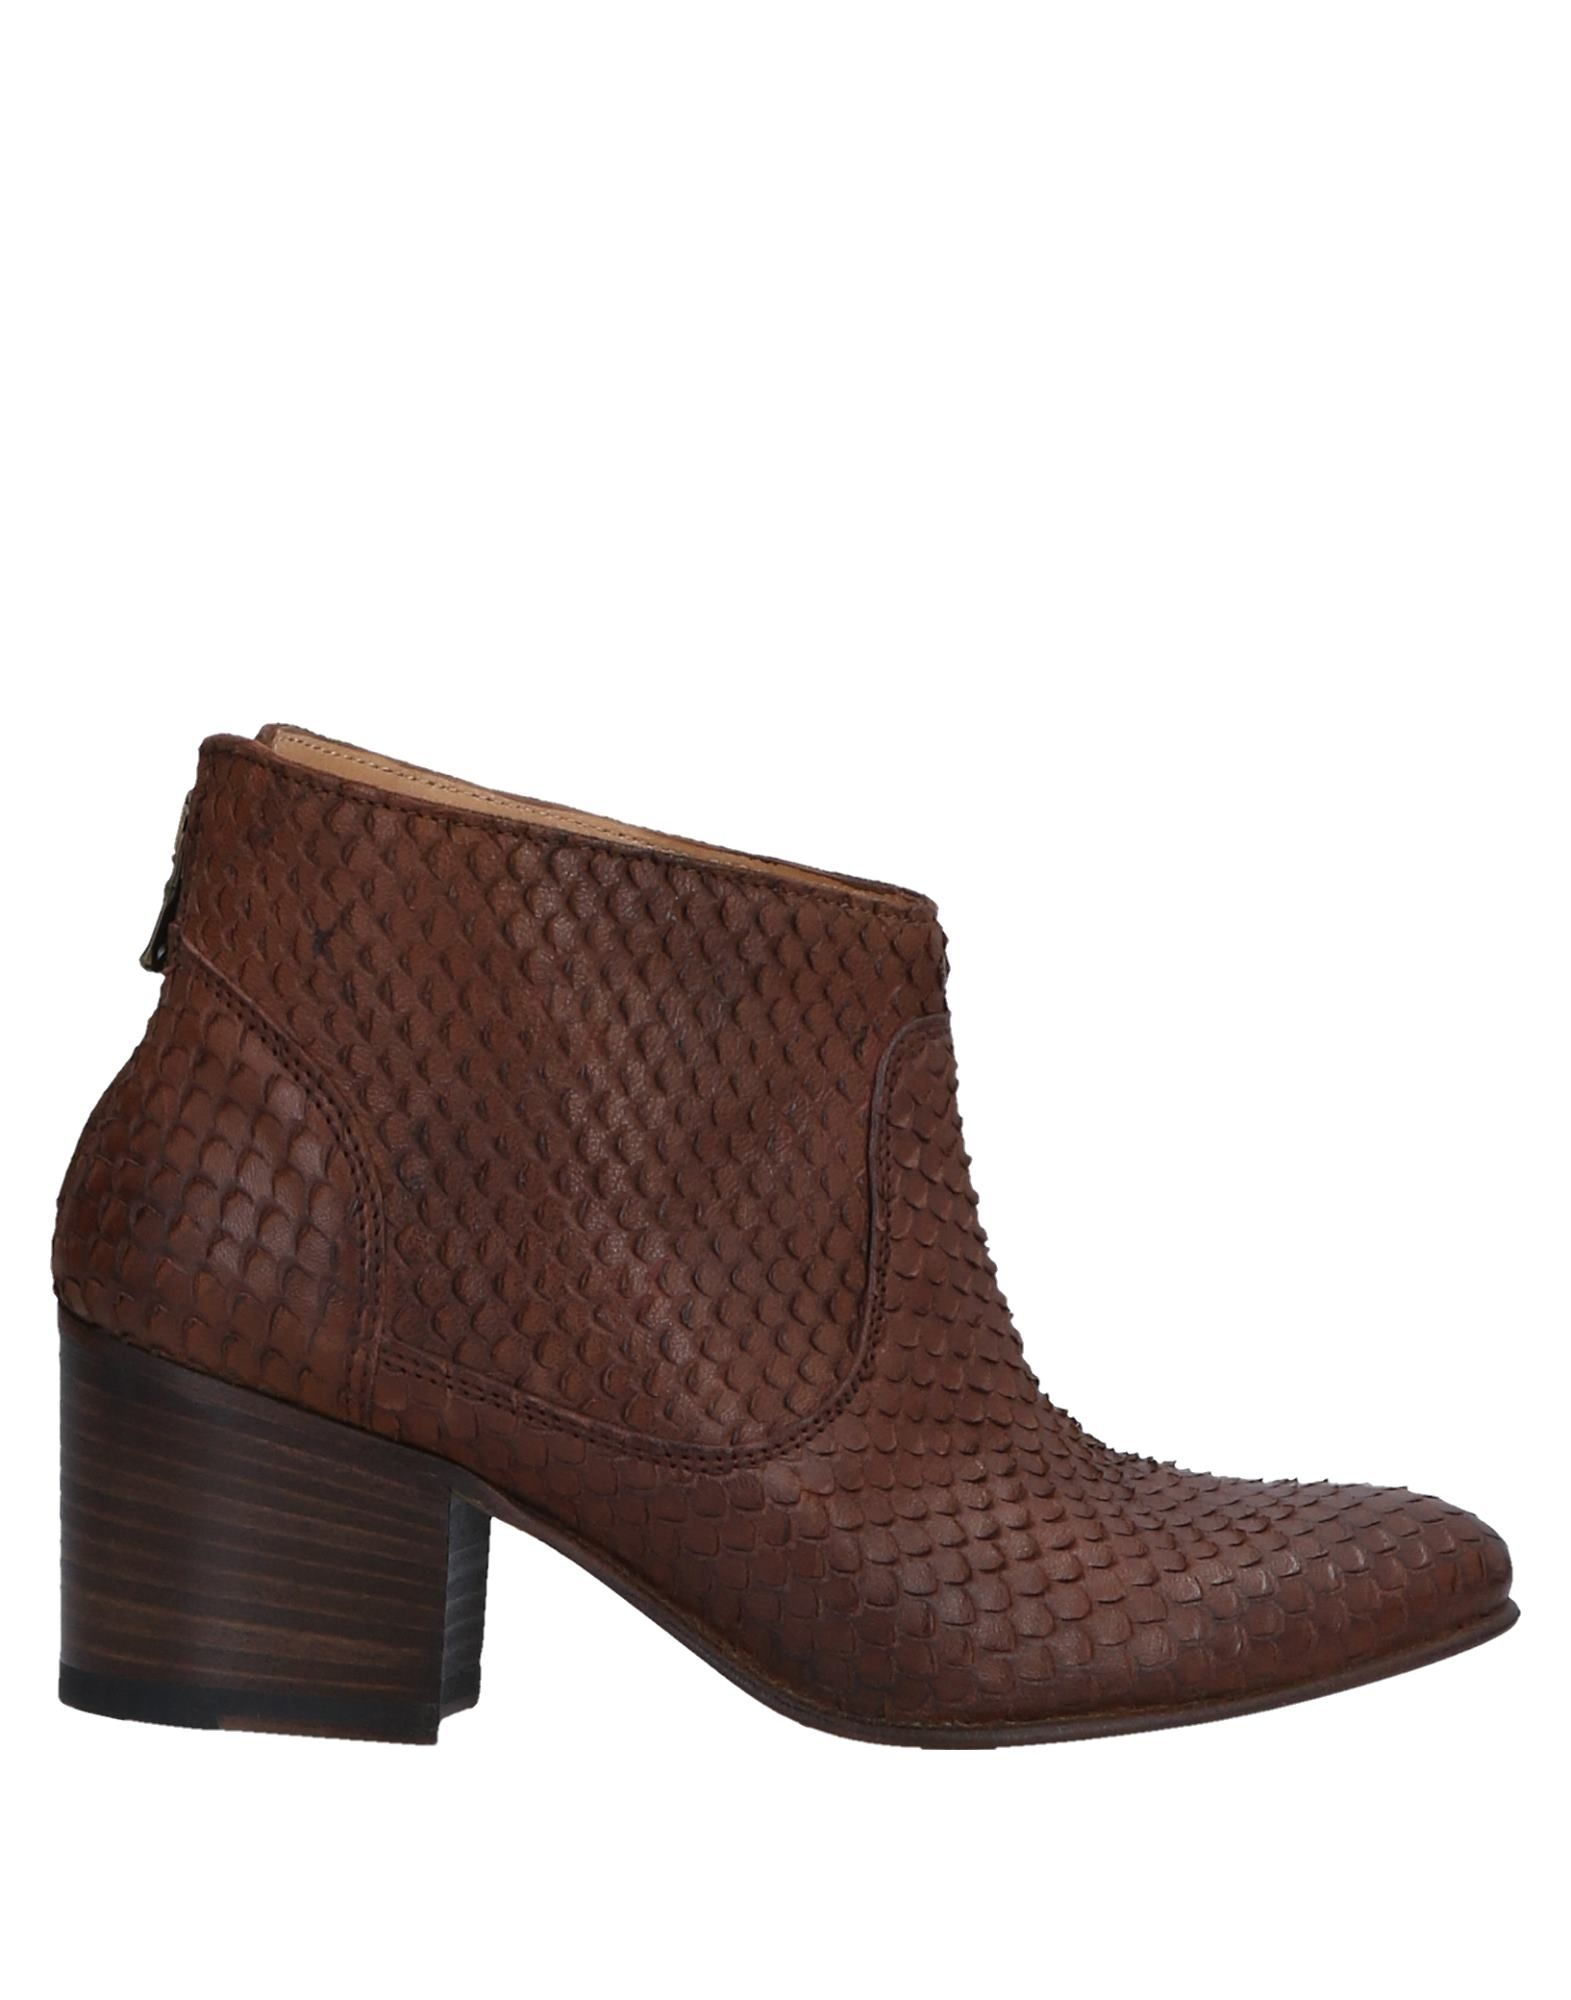 SEBOY'S Ankle Boot in Brown